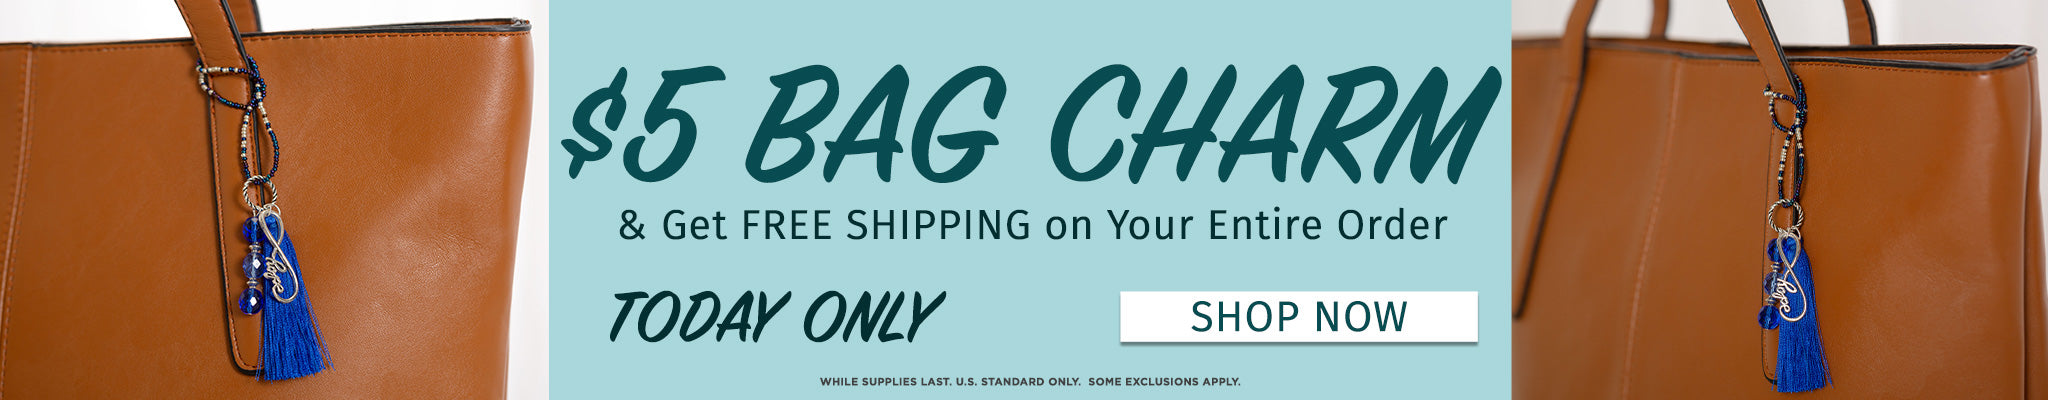 $5 Bag Charms & Get Free Shipping on Your Entire Order